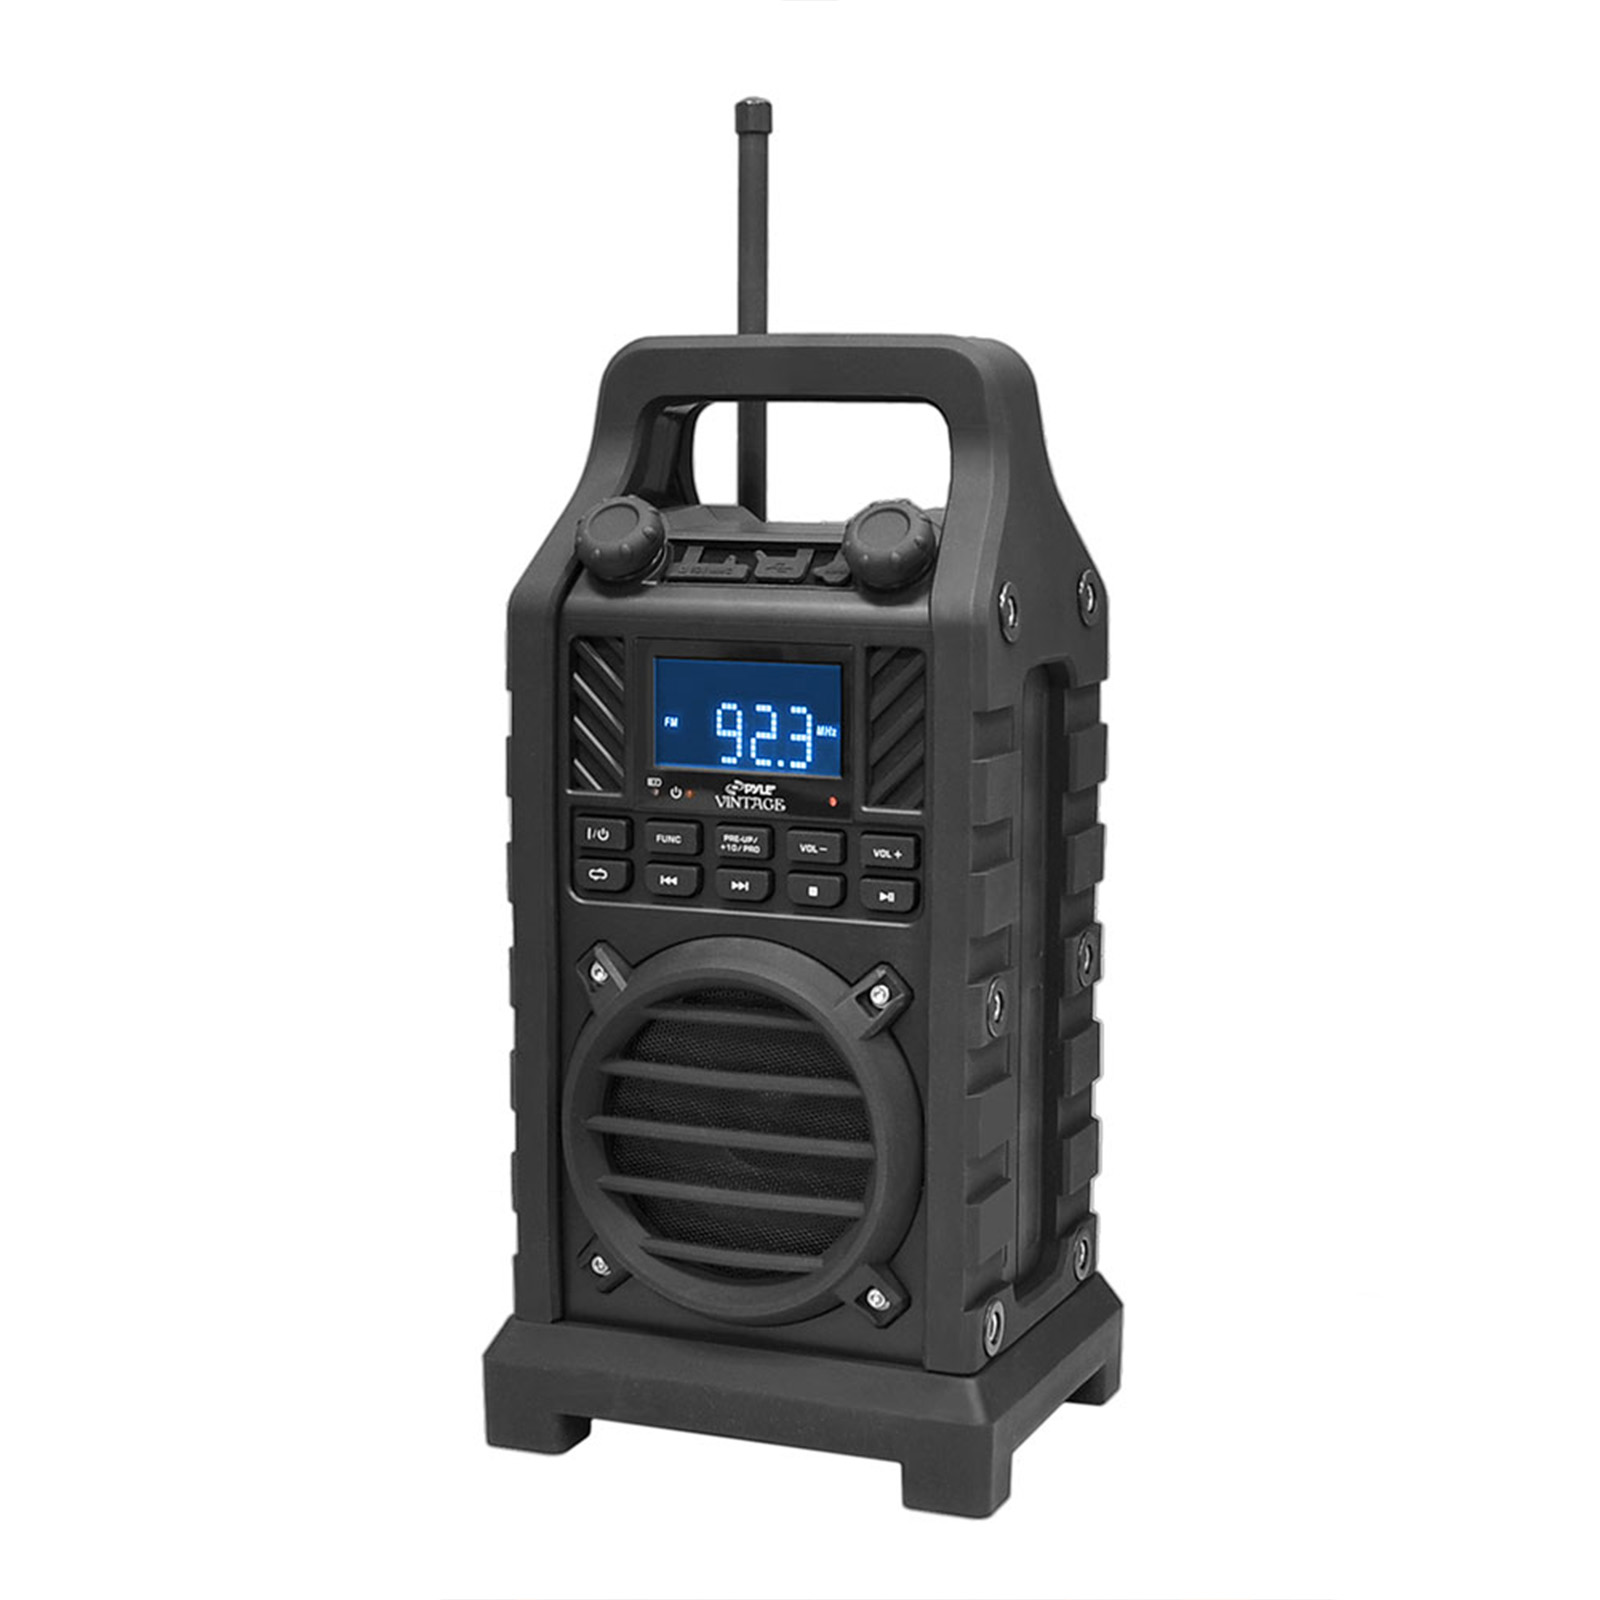 Pyle Rugged and Portable BT Speaker with Durable Construction, Thick Rubber Casing, FM Radio, USB SD Card... by Pyle